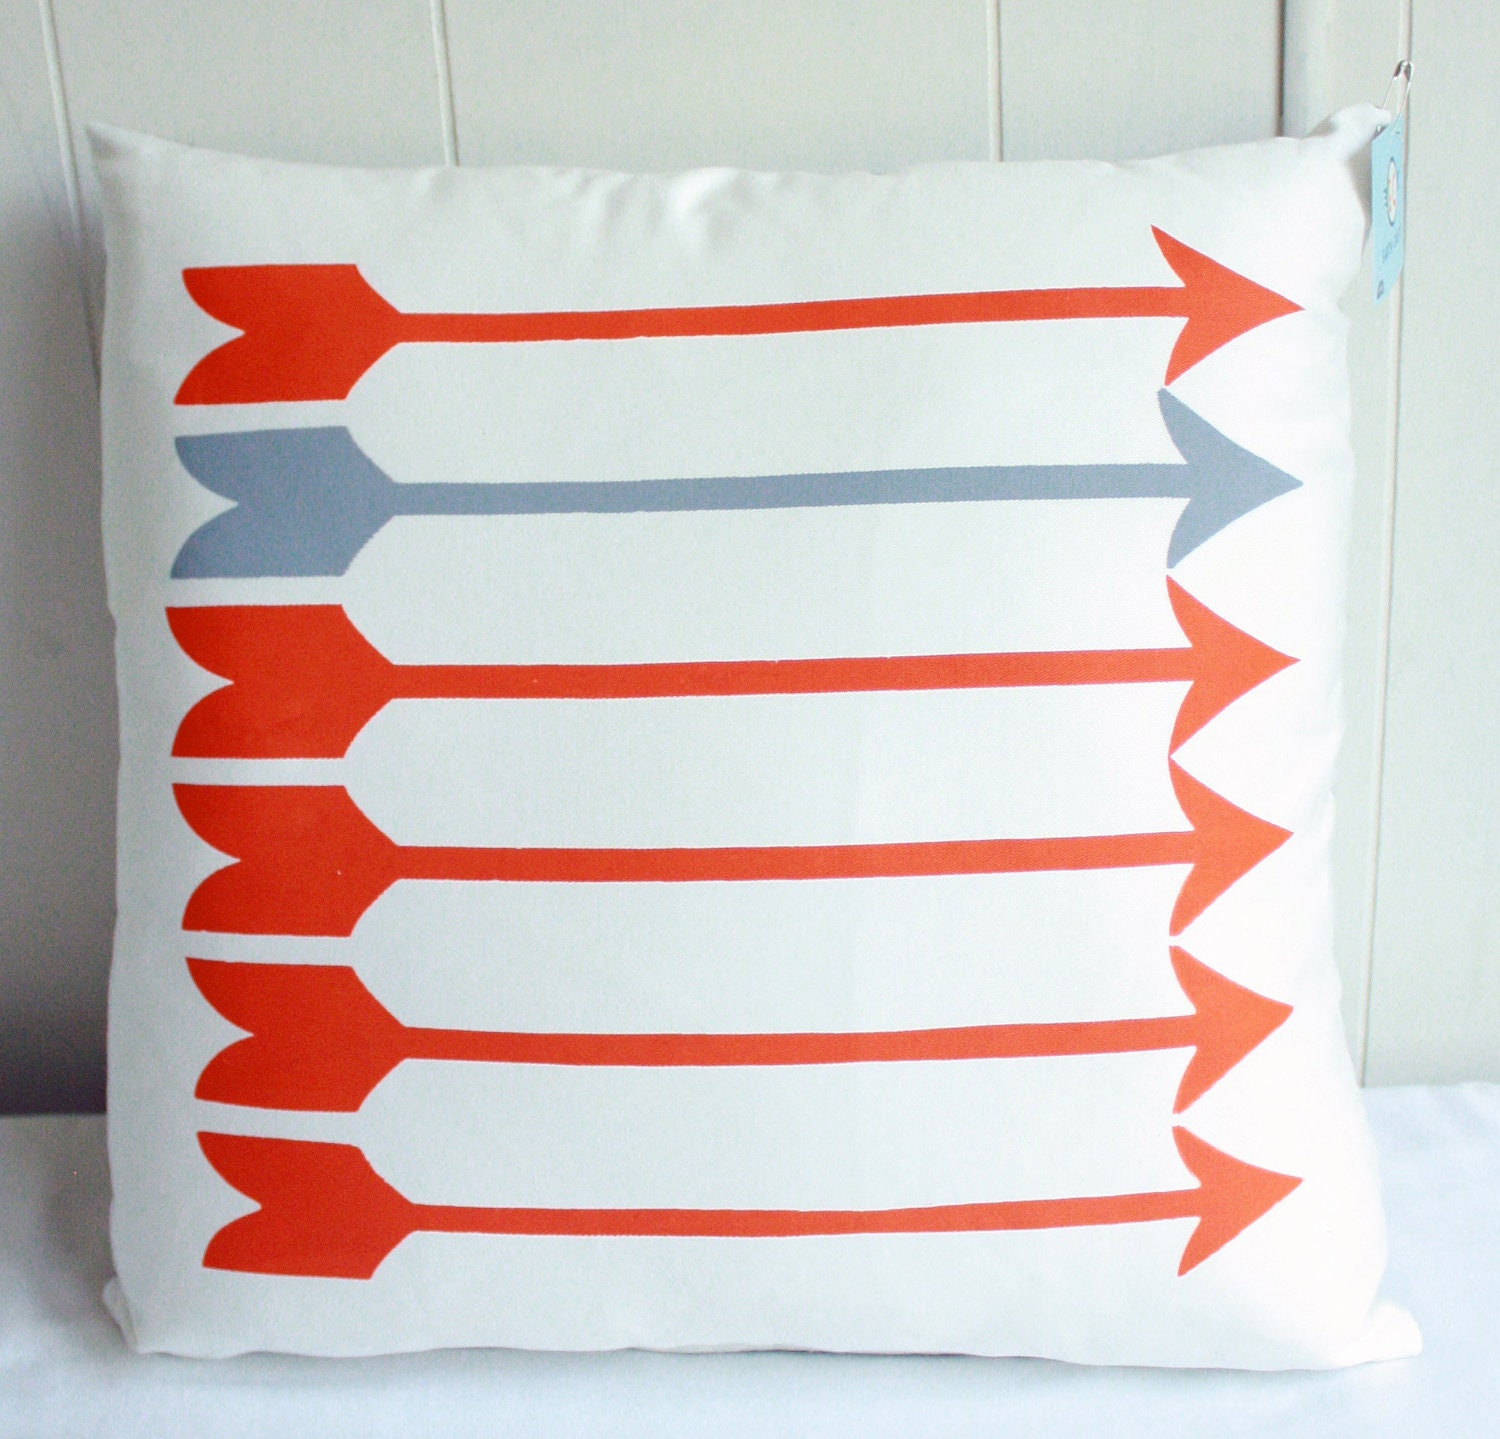 Sharp Shooter - arrow pattern, orange and grey organic screenprinted pillow 18x18 - EarthCadets